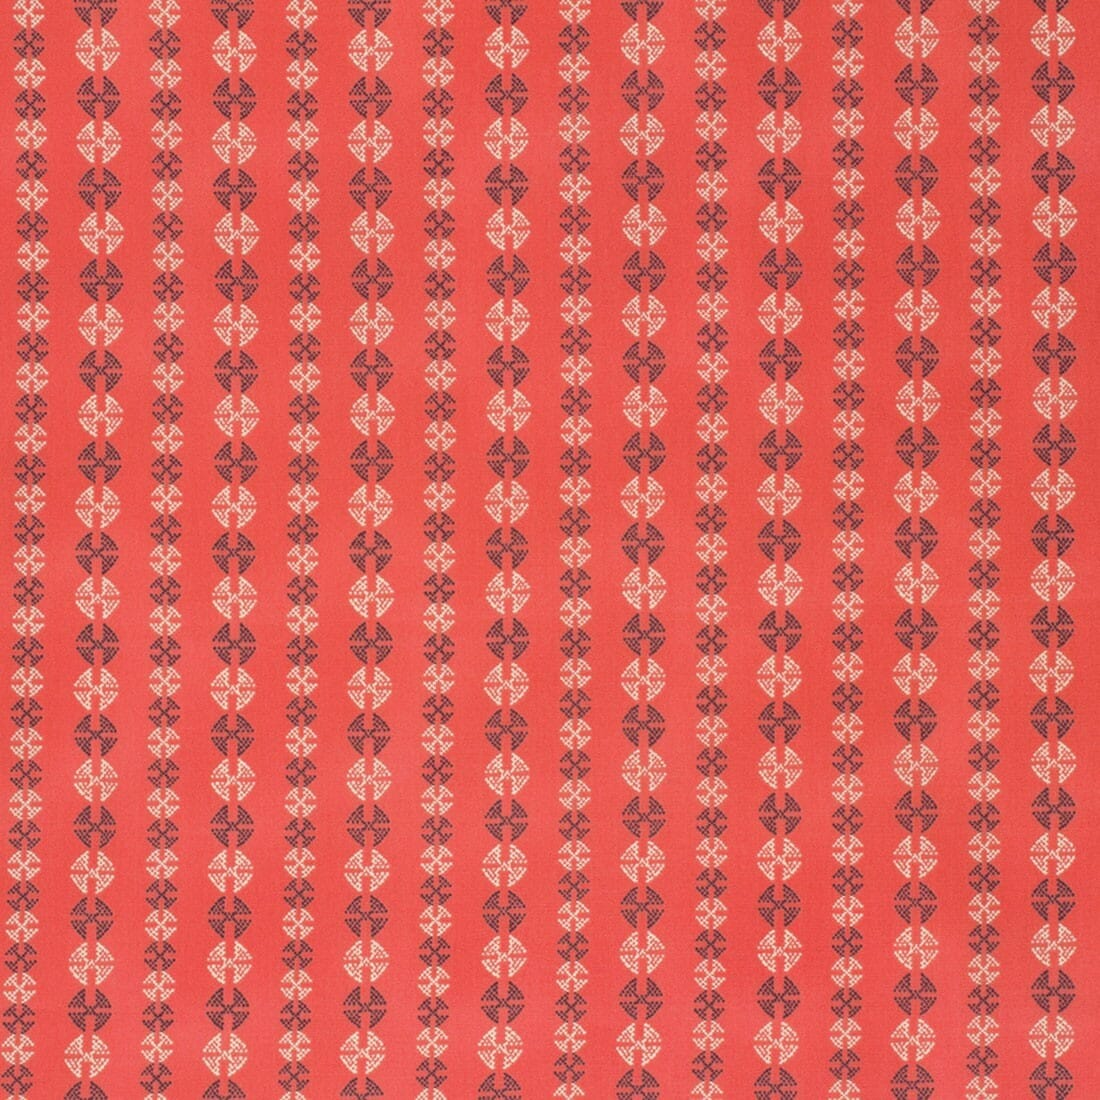 Amy Butler Bright Heart Grounded Coral Stitchy Dots Cotton Fabric